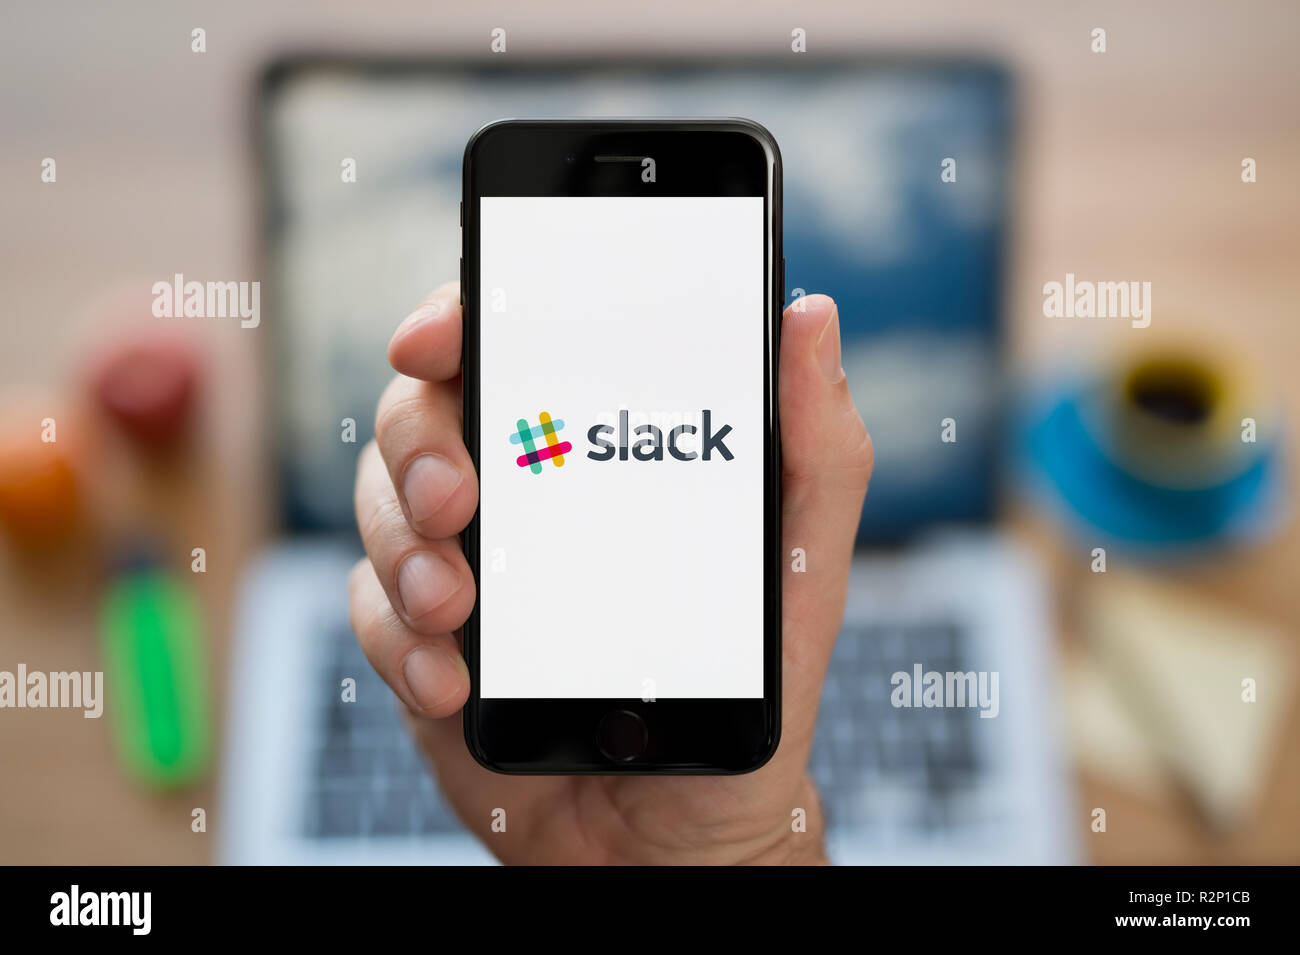 A man looks at his iPhone which displays the Slack logo, while sat at his computer desk (Editorial use only). - Stock Image